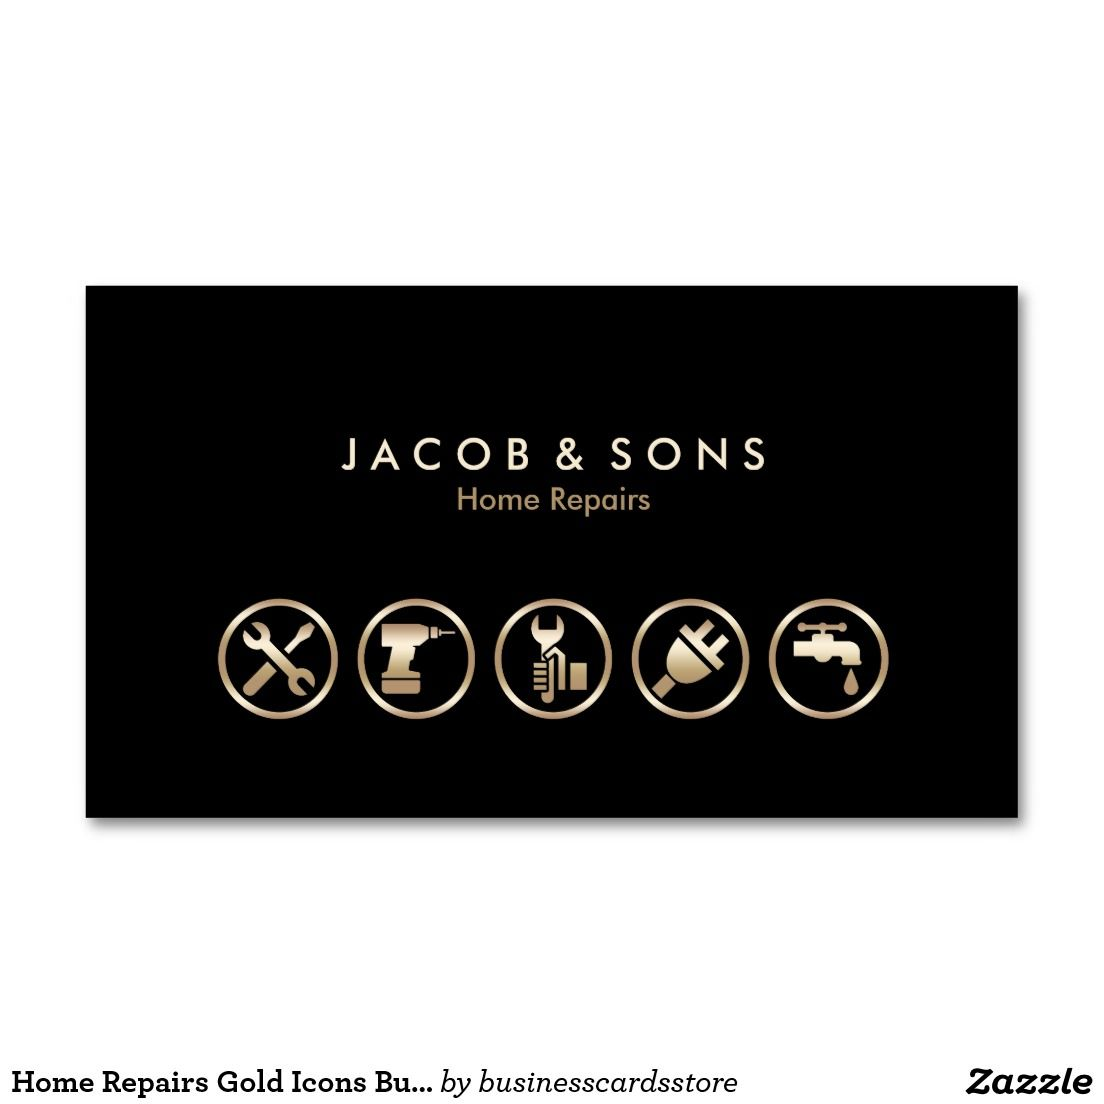 Home Repairs Gold Icons Business Card | Pinterest | Business cards ...